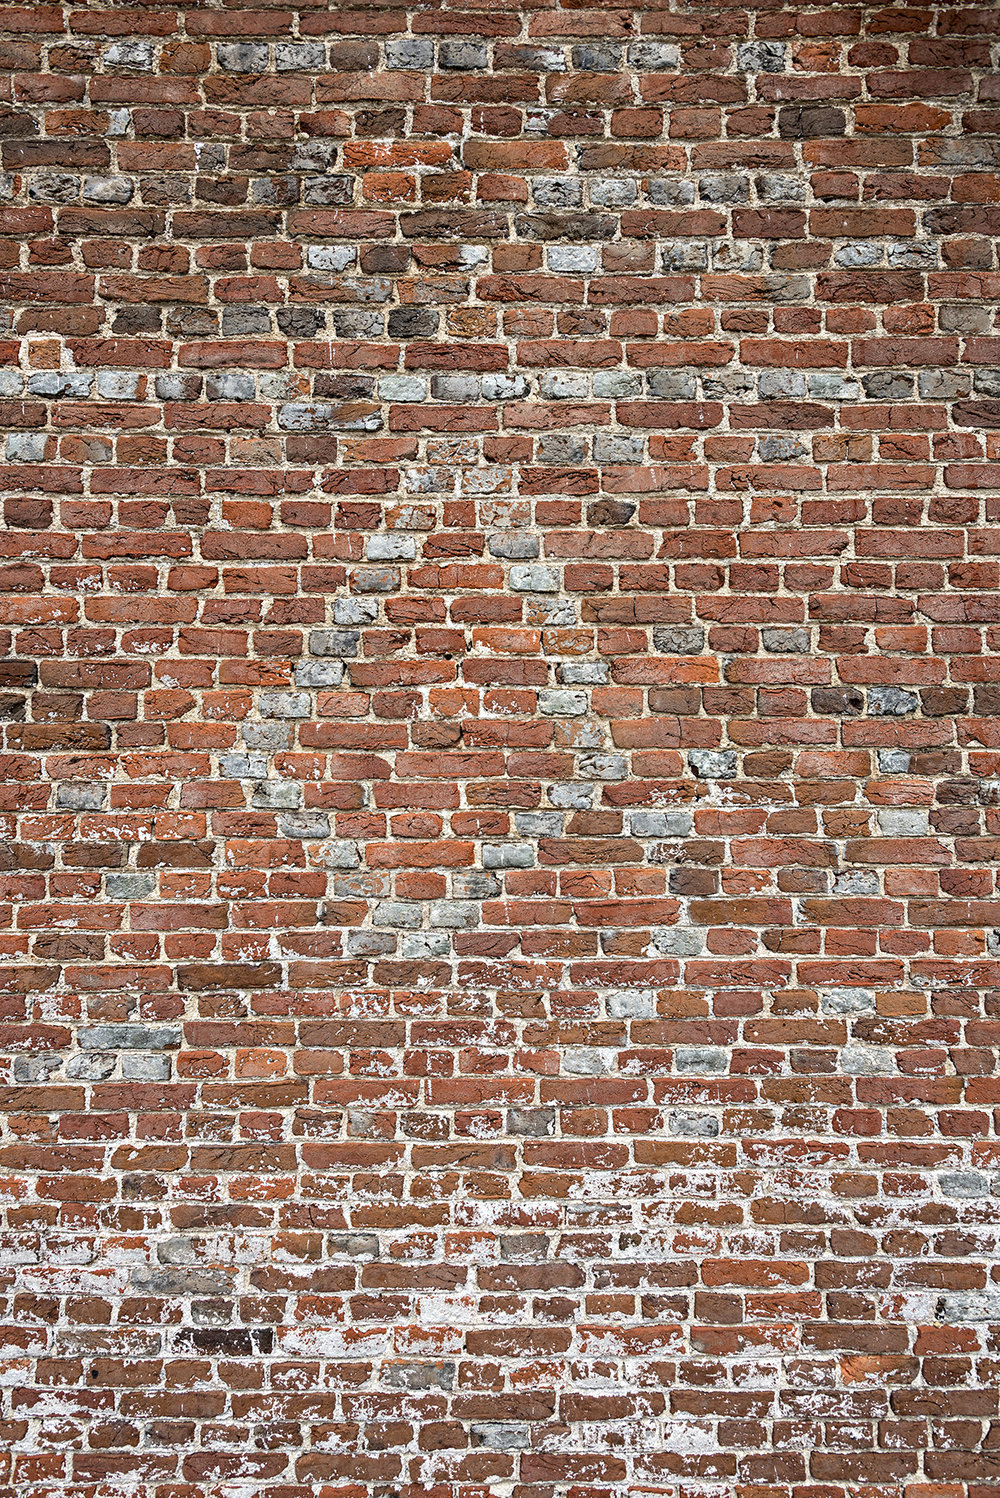 Cloverfields (1705). diamond pattern in the gable end. / Photo Credit: Willie Graham, 2018.